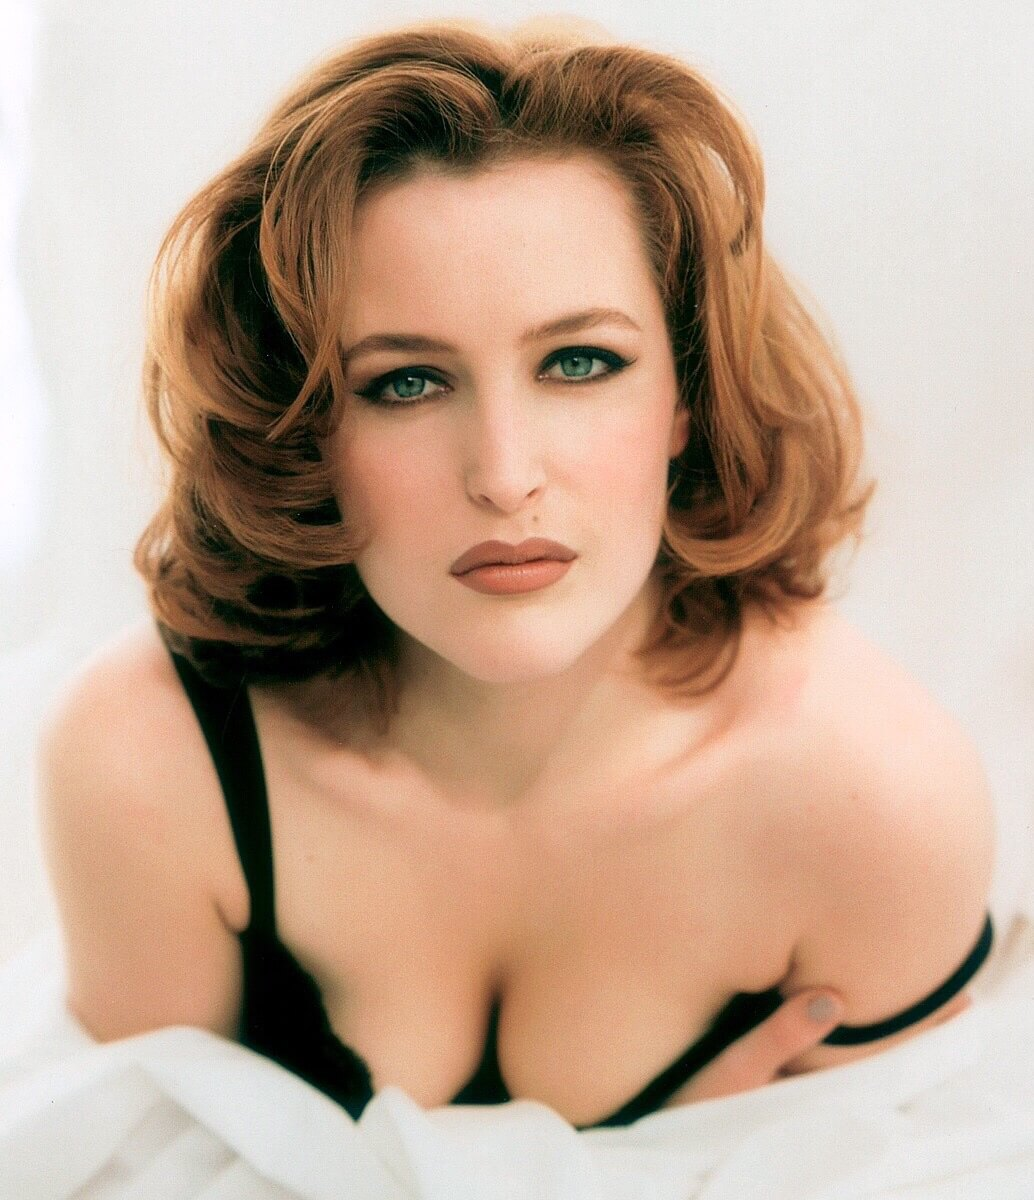 Gillian Anderson sexy bikiny pictures (2)